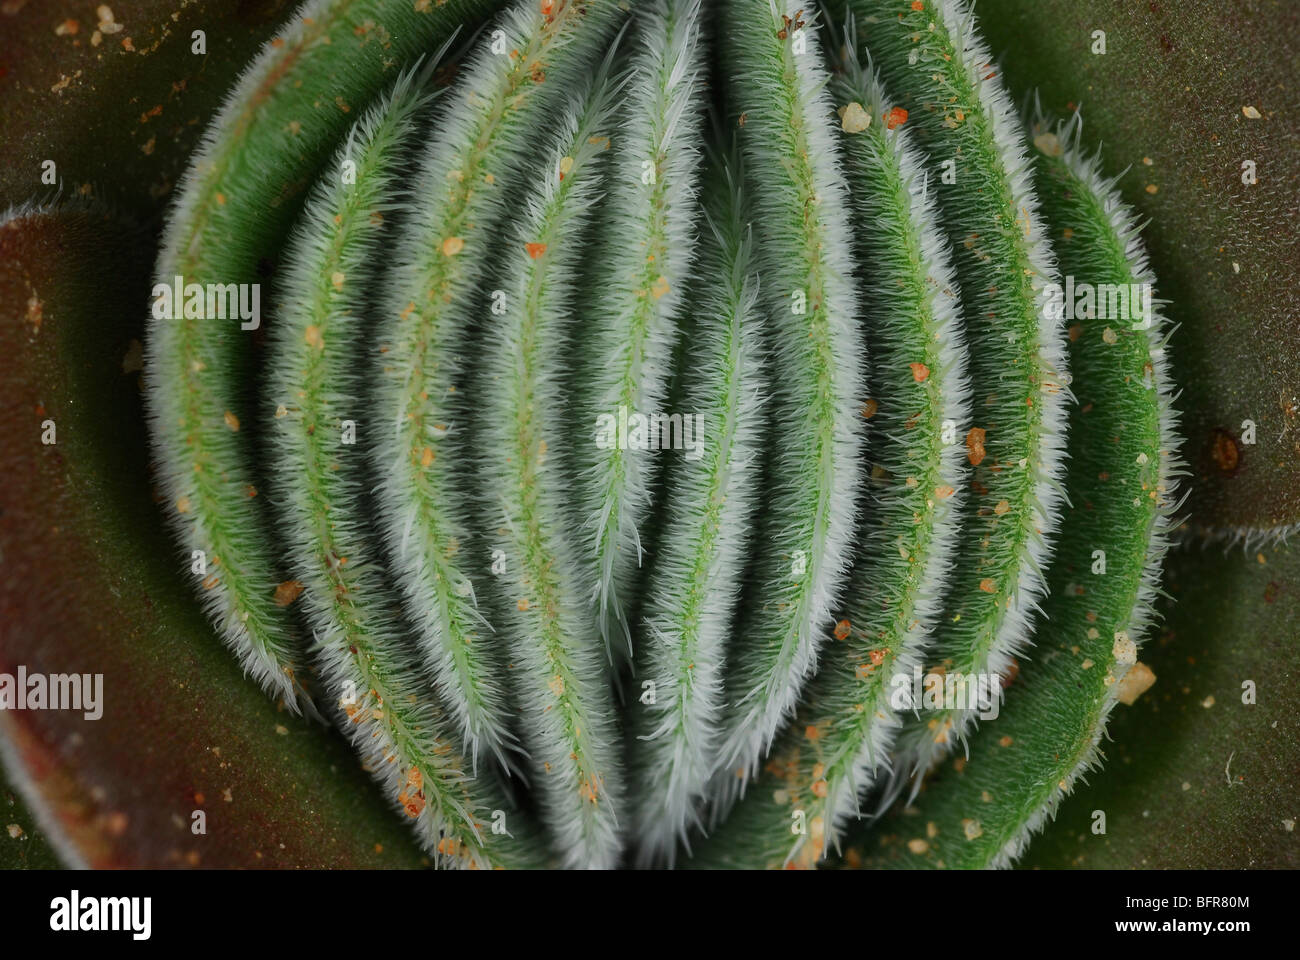 Close-up of hairy leaves of plant - Stock Image